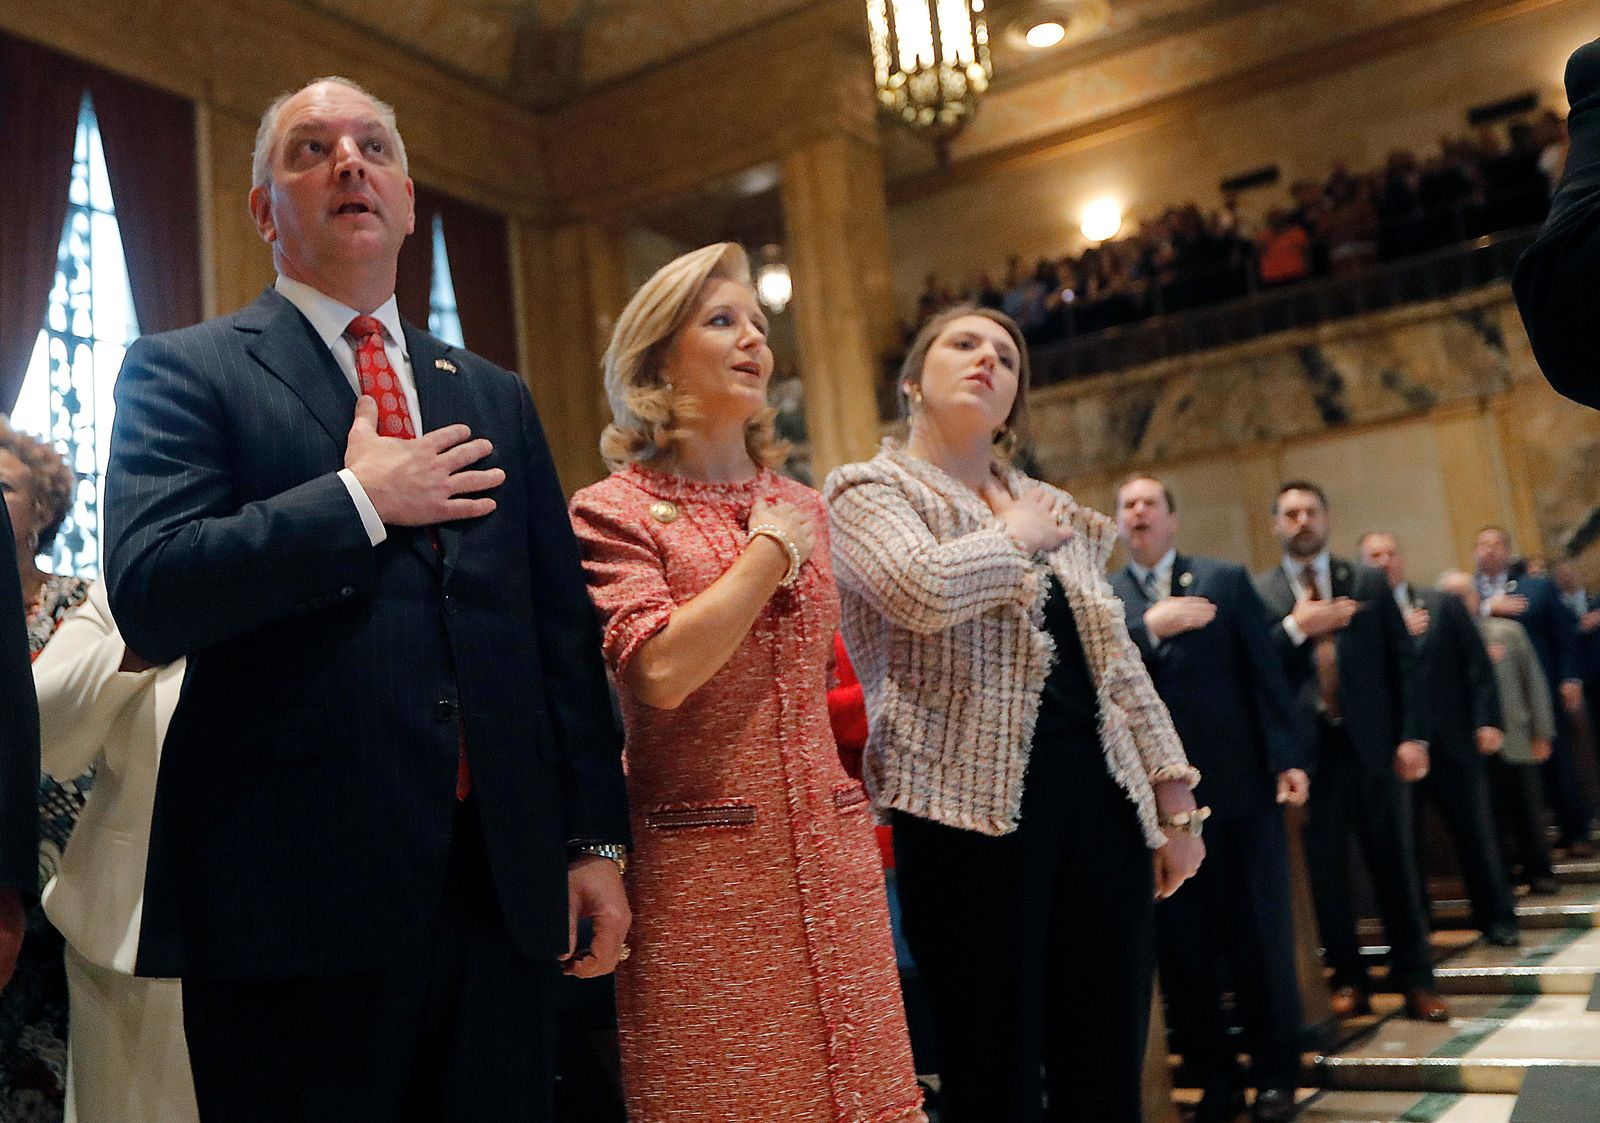 FILE - In this  Monday, April 8, 2019 file photo, Louisiana Gov. John Bel Edwards holds his hand to his heart with his wife, Donna Edwards, and their daughter Sarah Ellen Edwards, right, during the pledge of allegiance at the opening of the annual state legislative session in Baton Rouge, La. (AP Photo/Gerald Herbert, Pool, File)